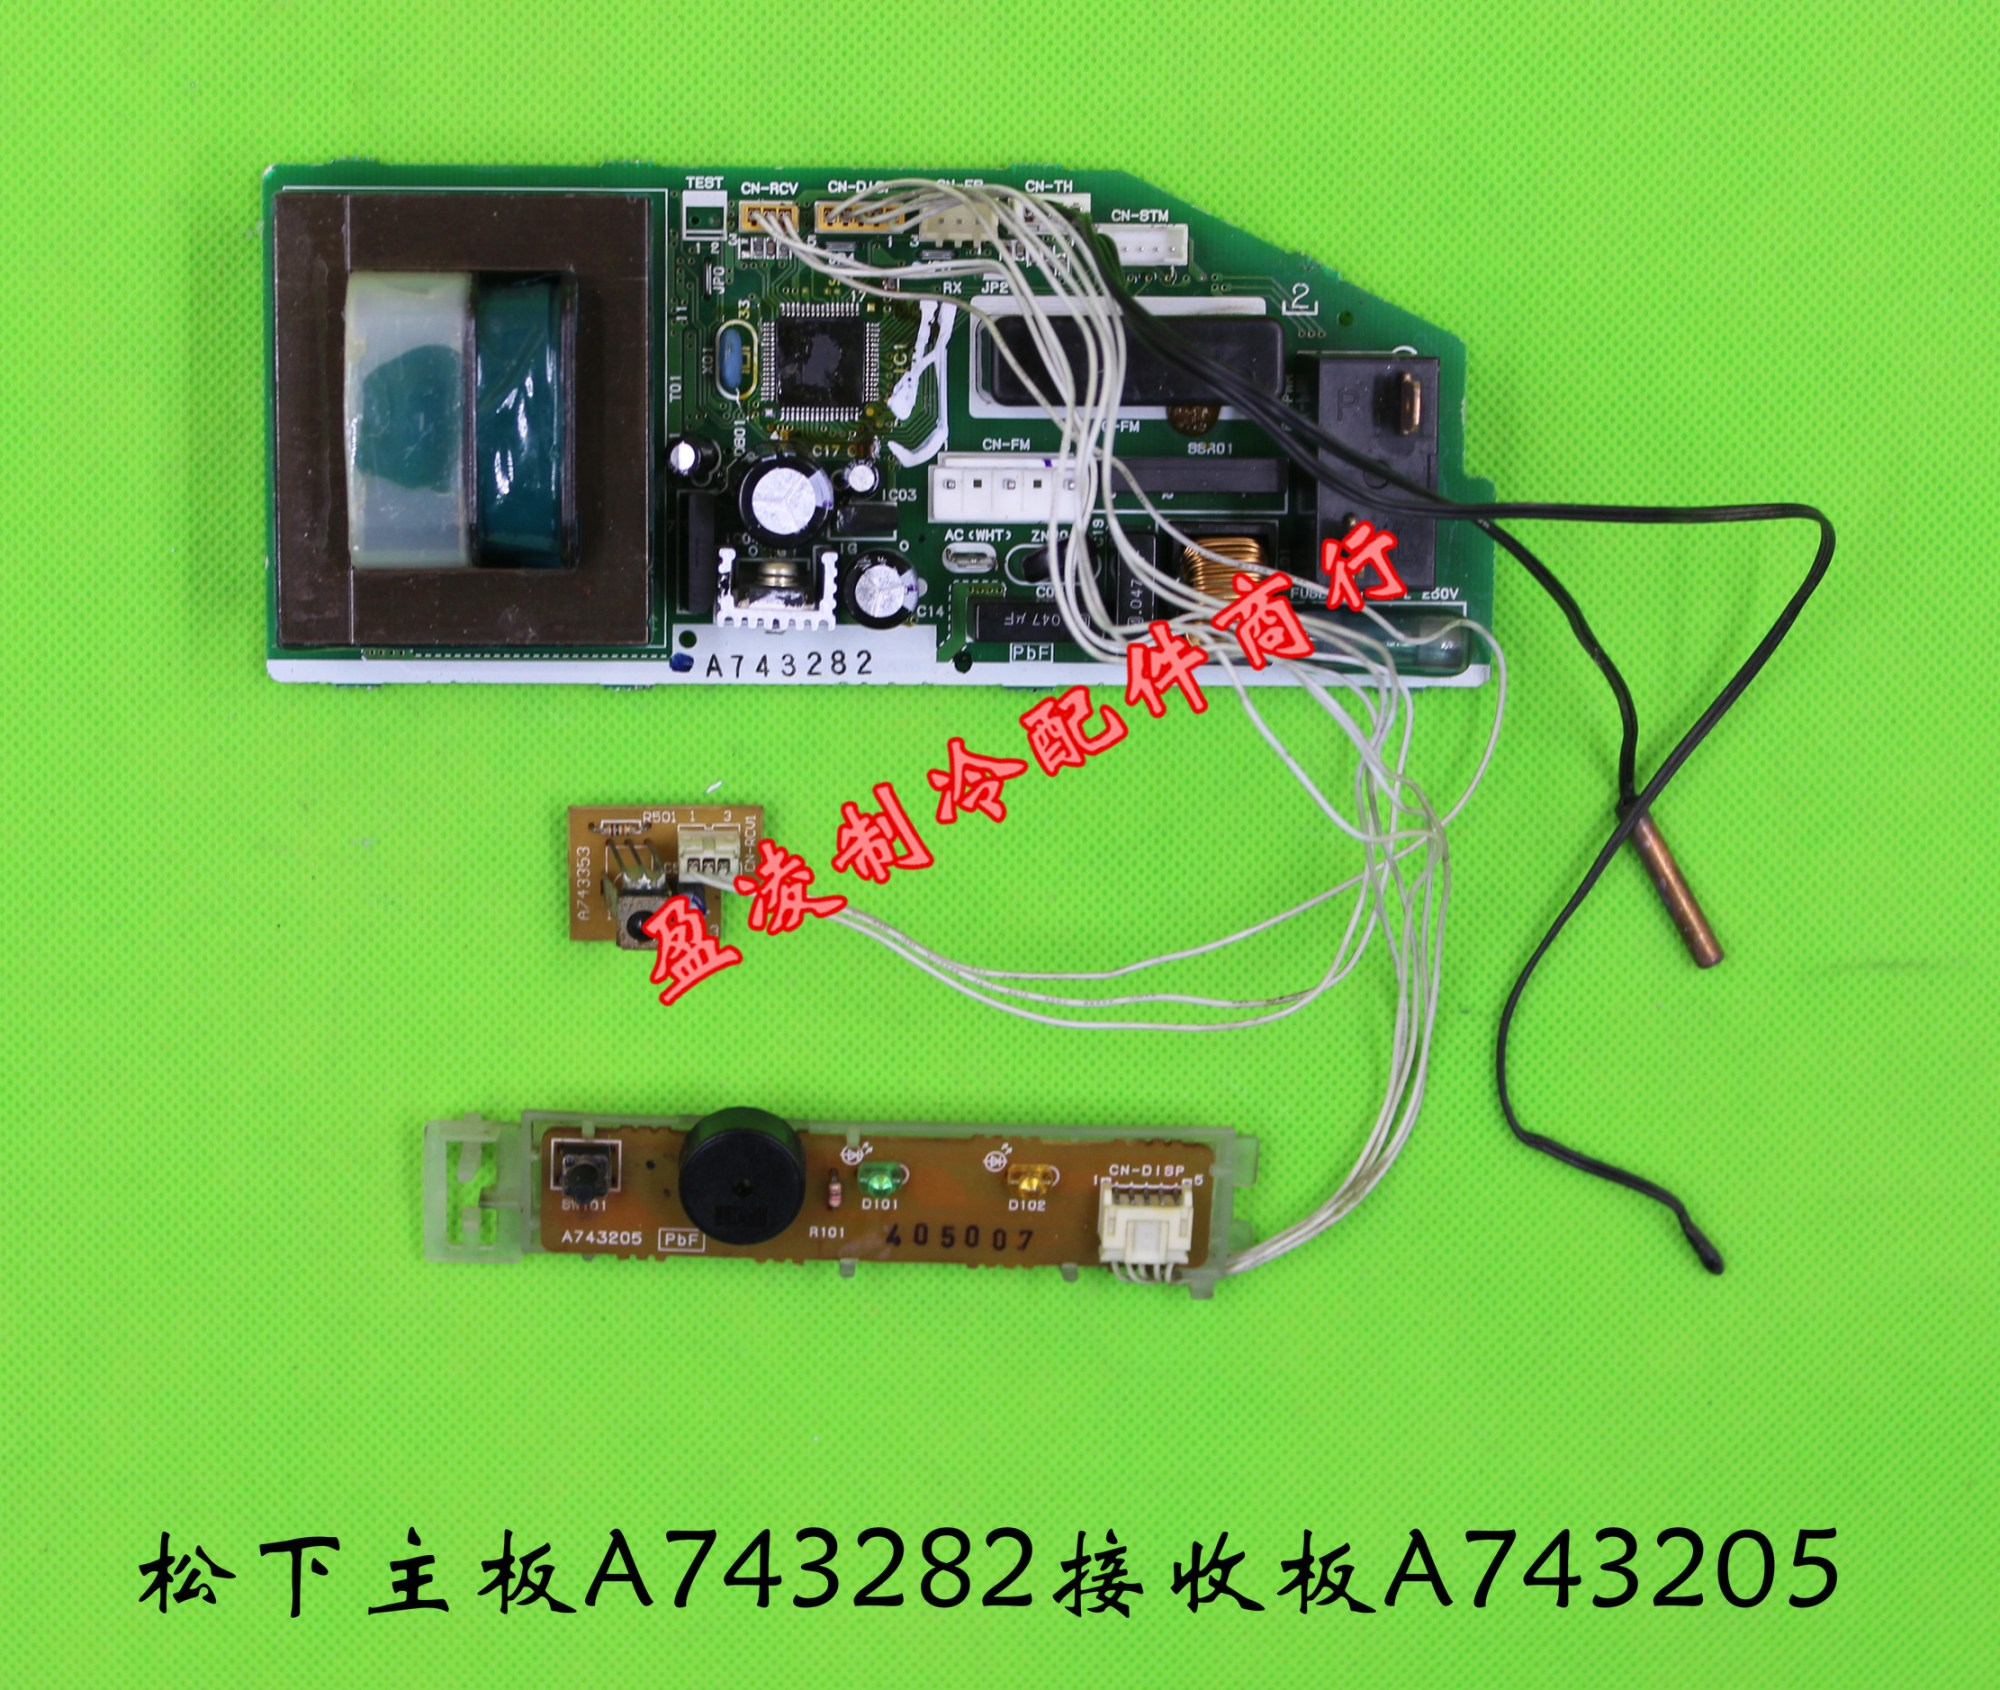 hight resolution of panasonic air conditioning parts circuit board a743467 a743282 display receiver board a743205